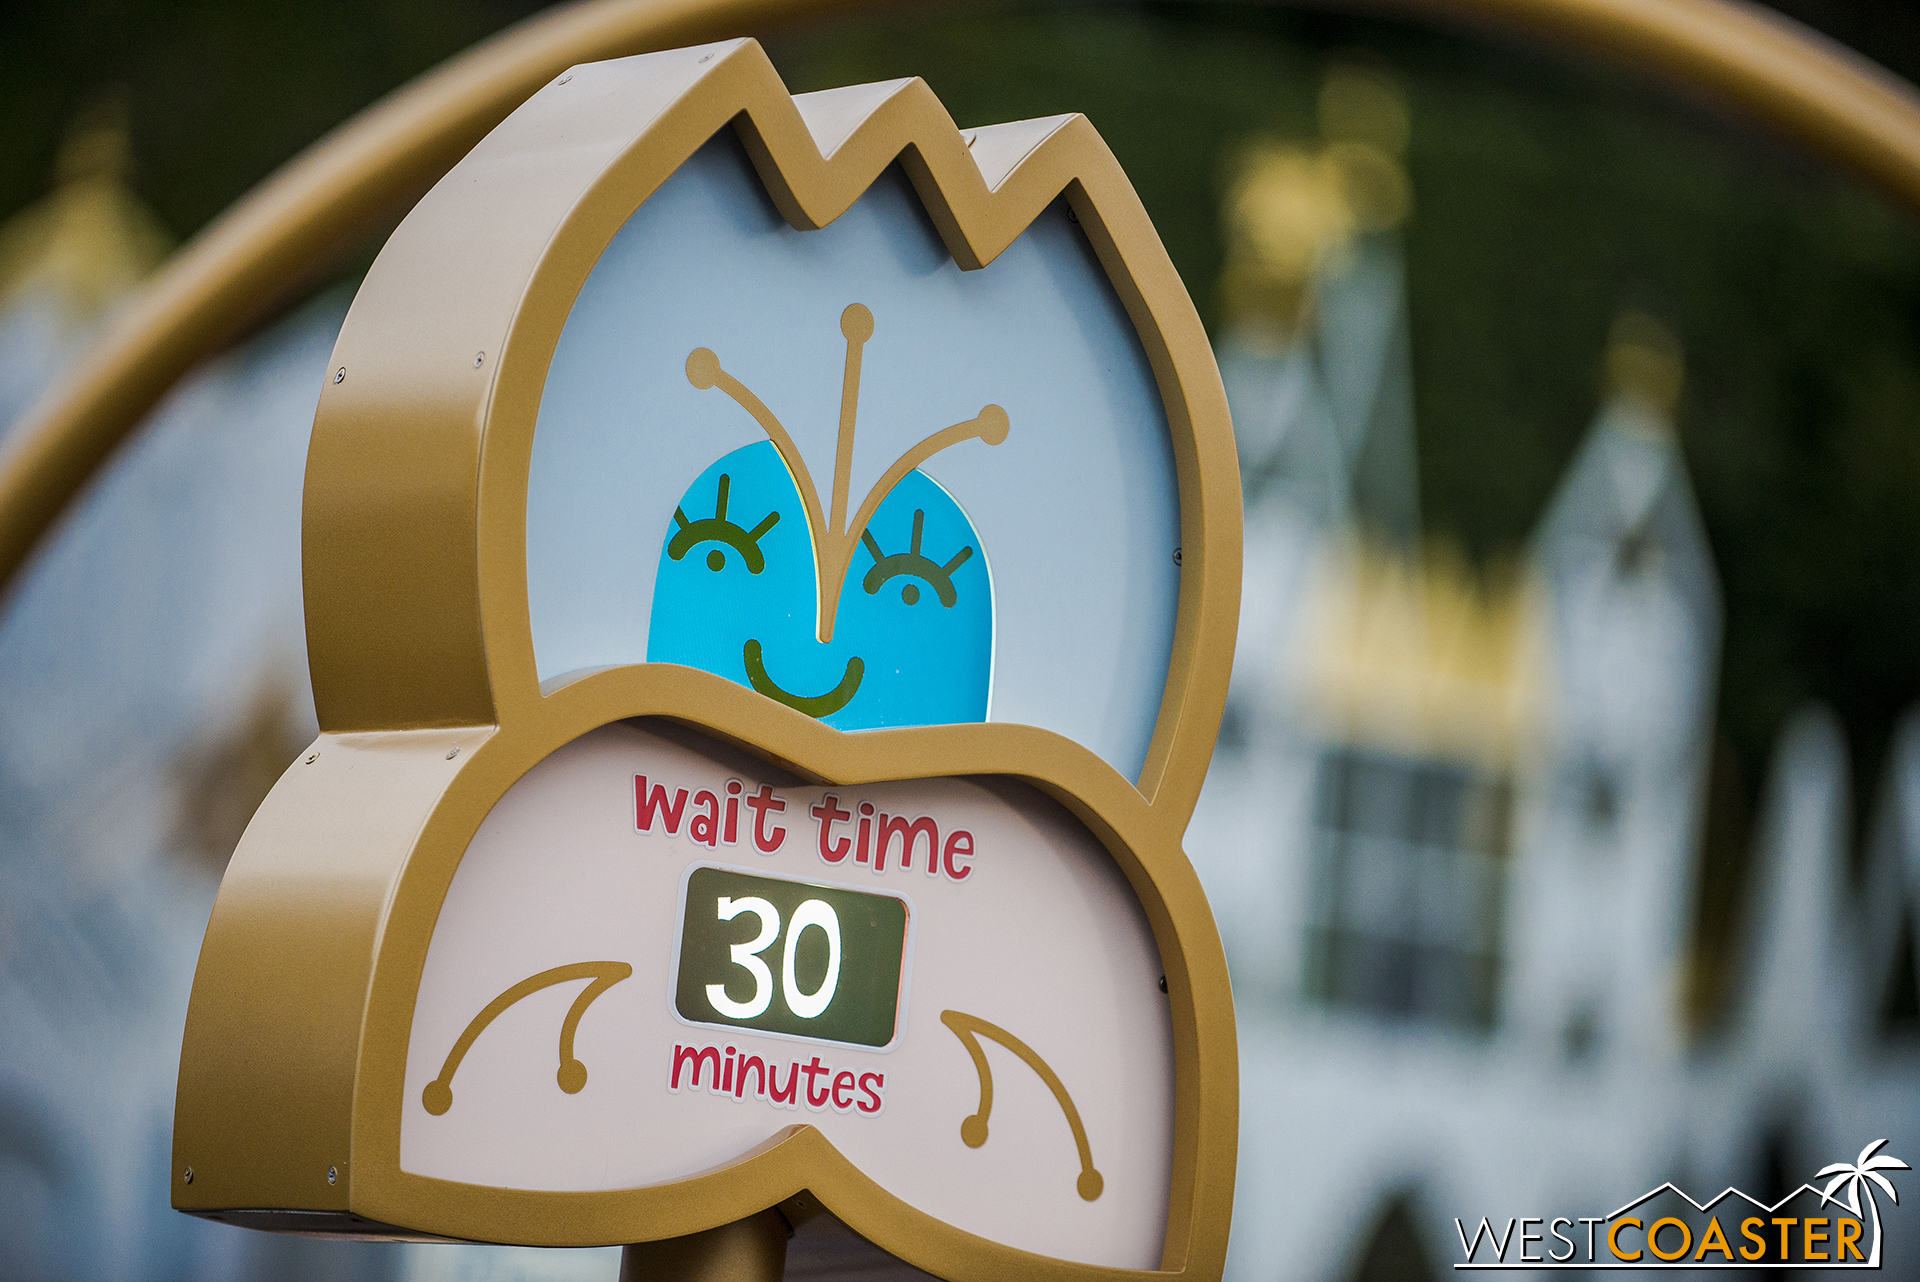 But It's A Small World has a digital wait time display now.